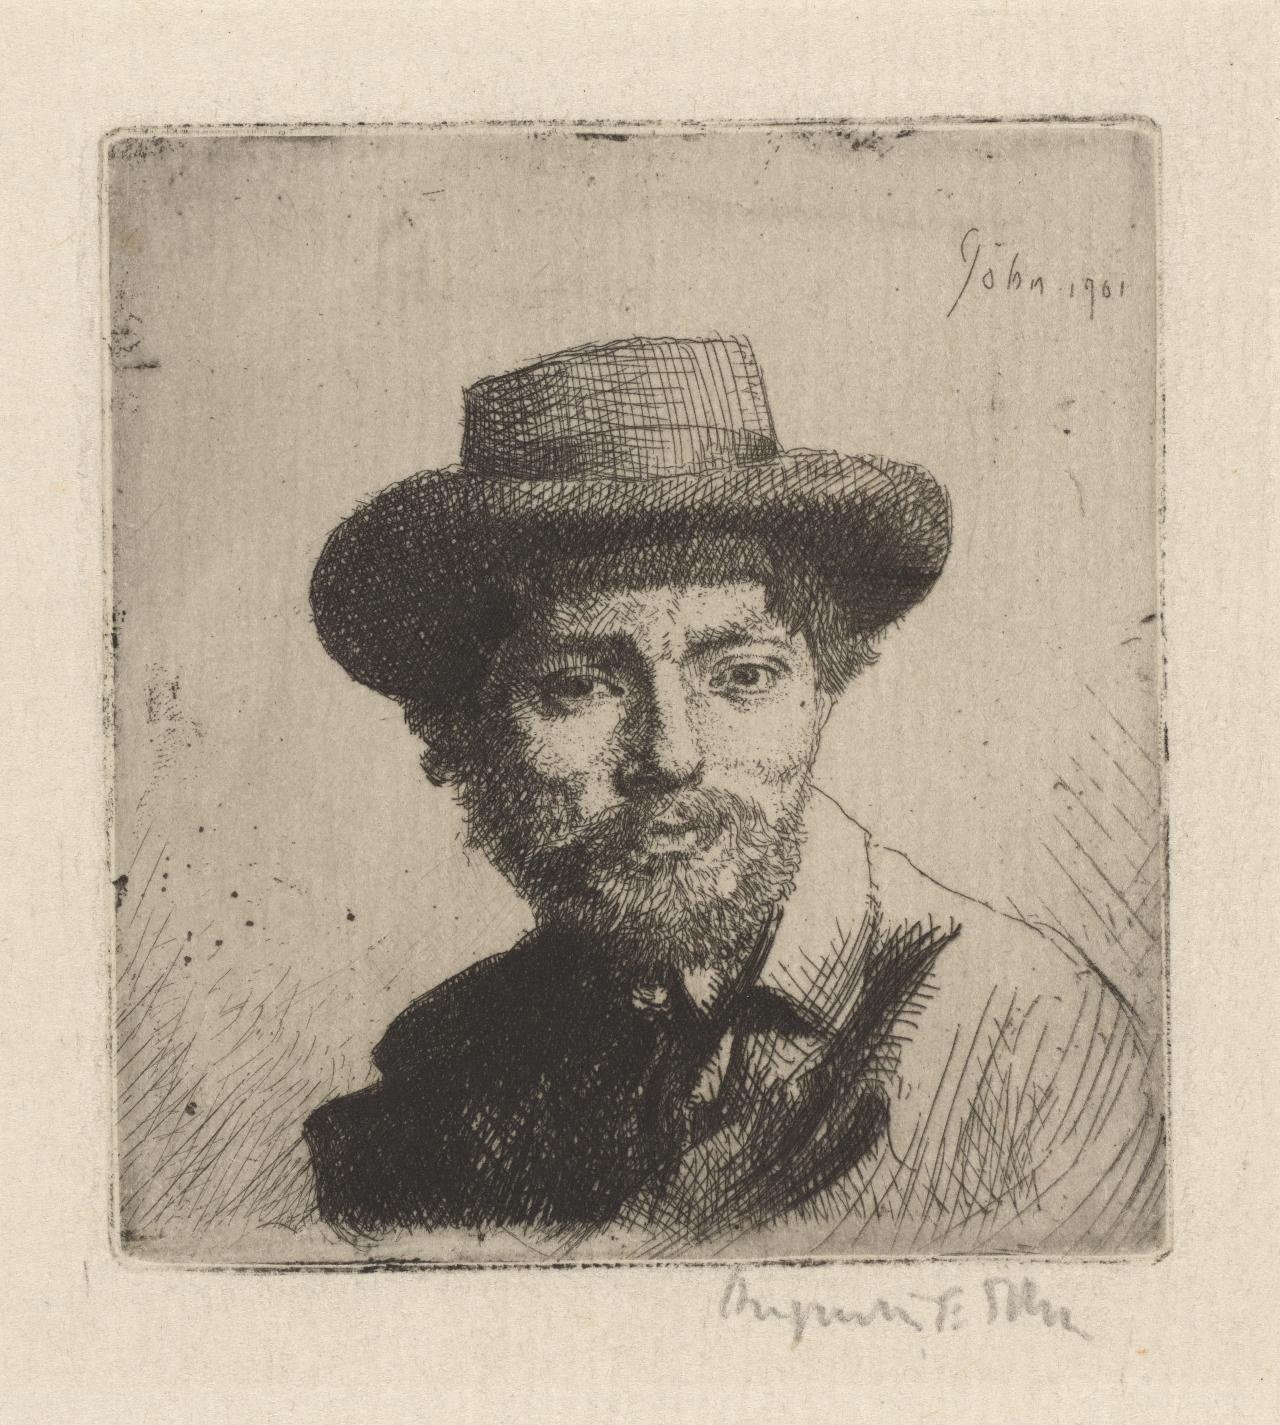 Portrait of the artist: Bust, full face, in a hat